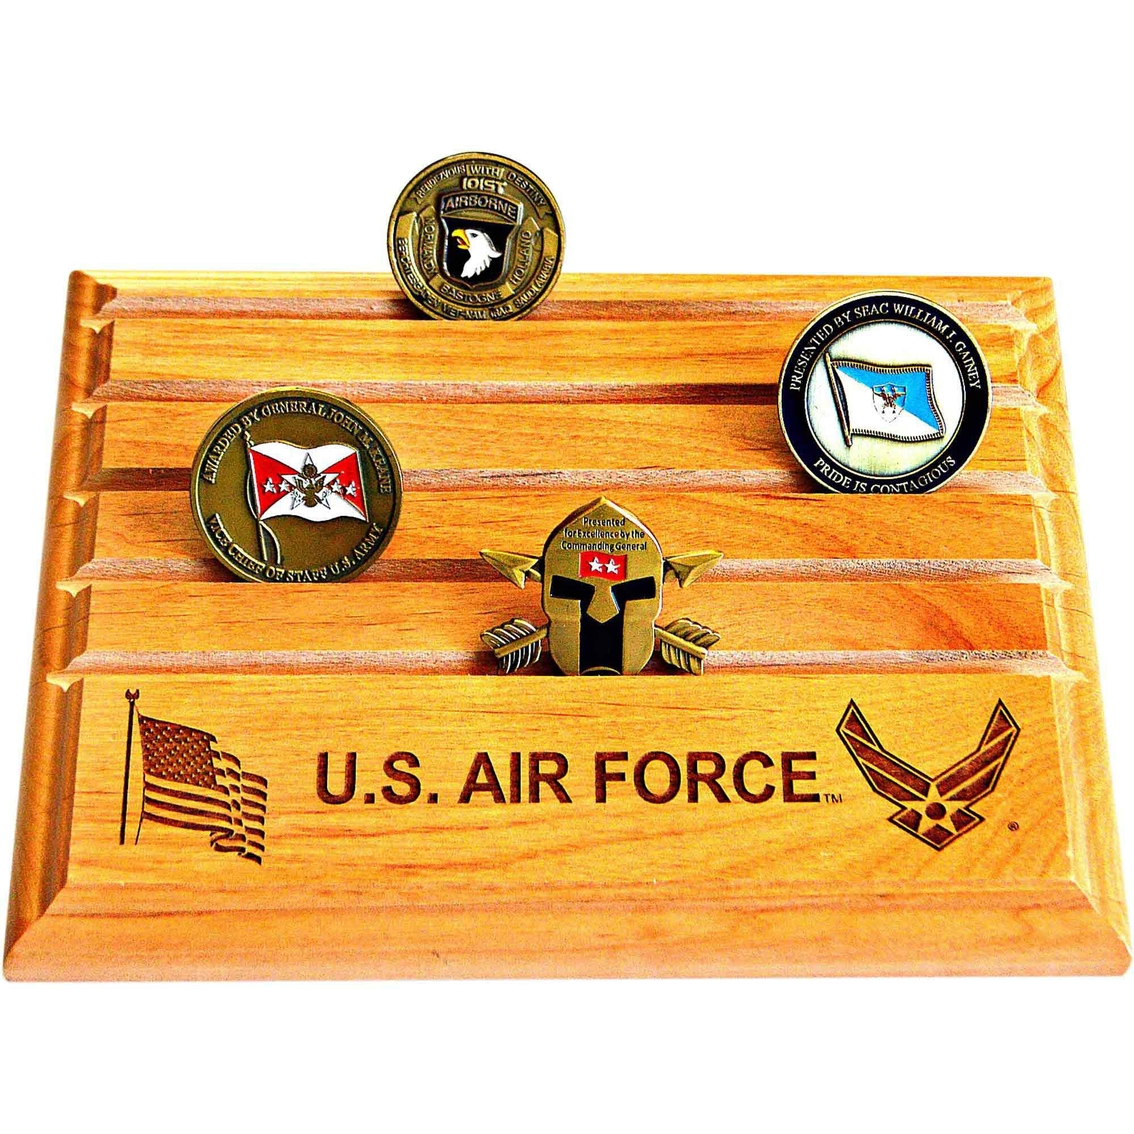 Mi Engraving Air Force 7 X 9 Coin Holder | Coins & Cases | Gifts